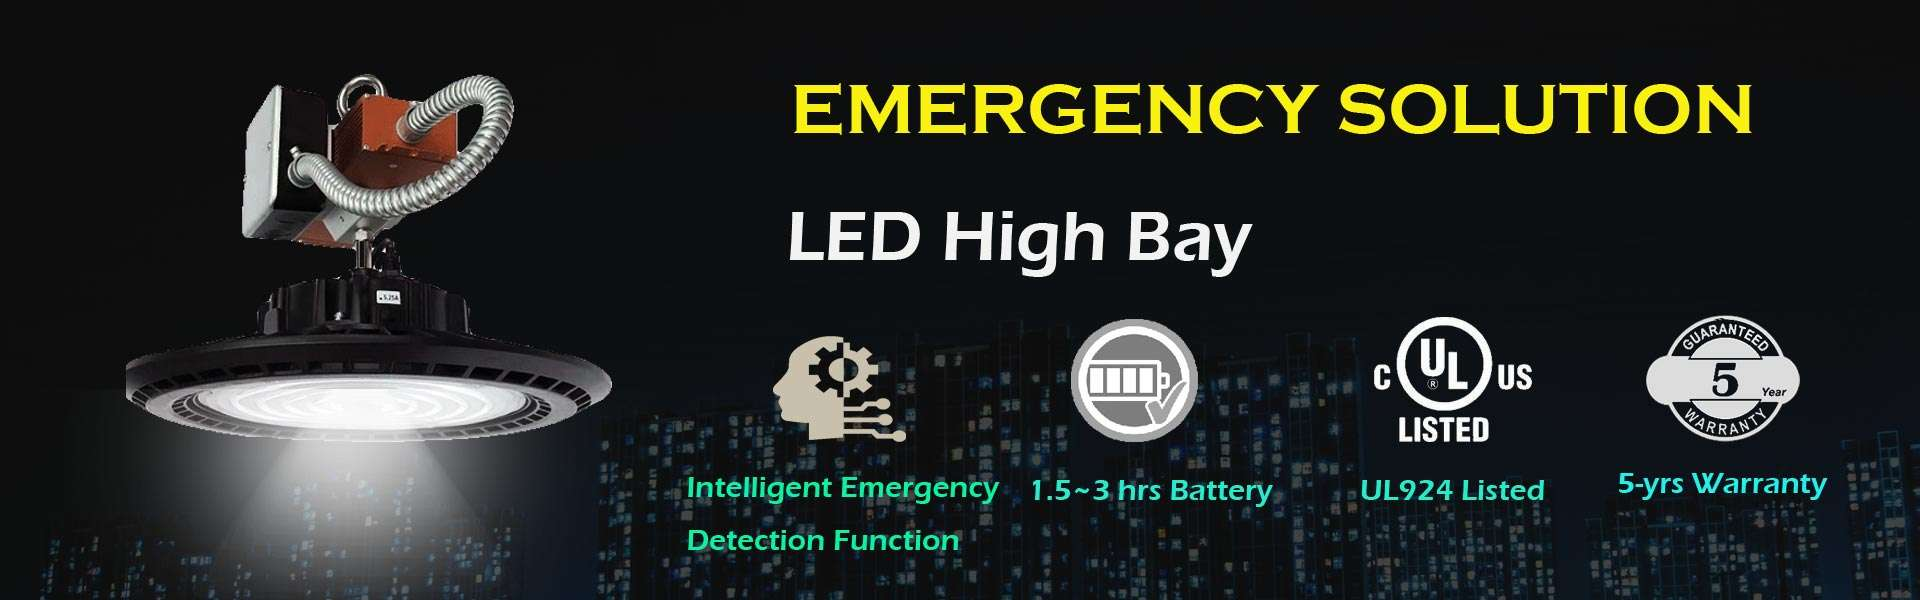 ergency-battery backup-led-high-bay-light-